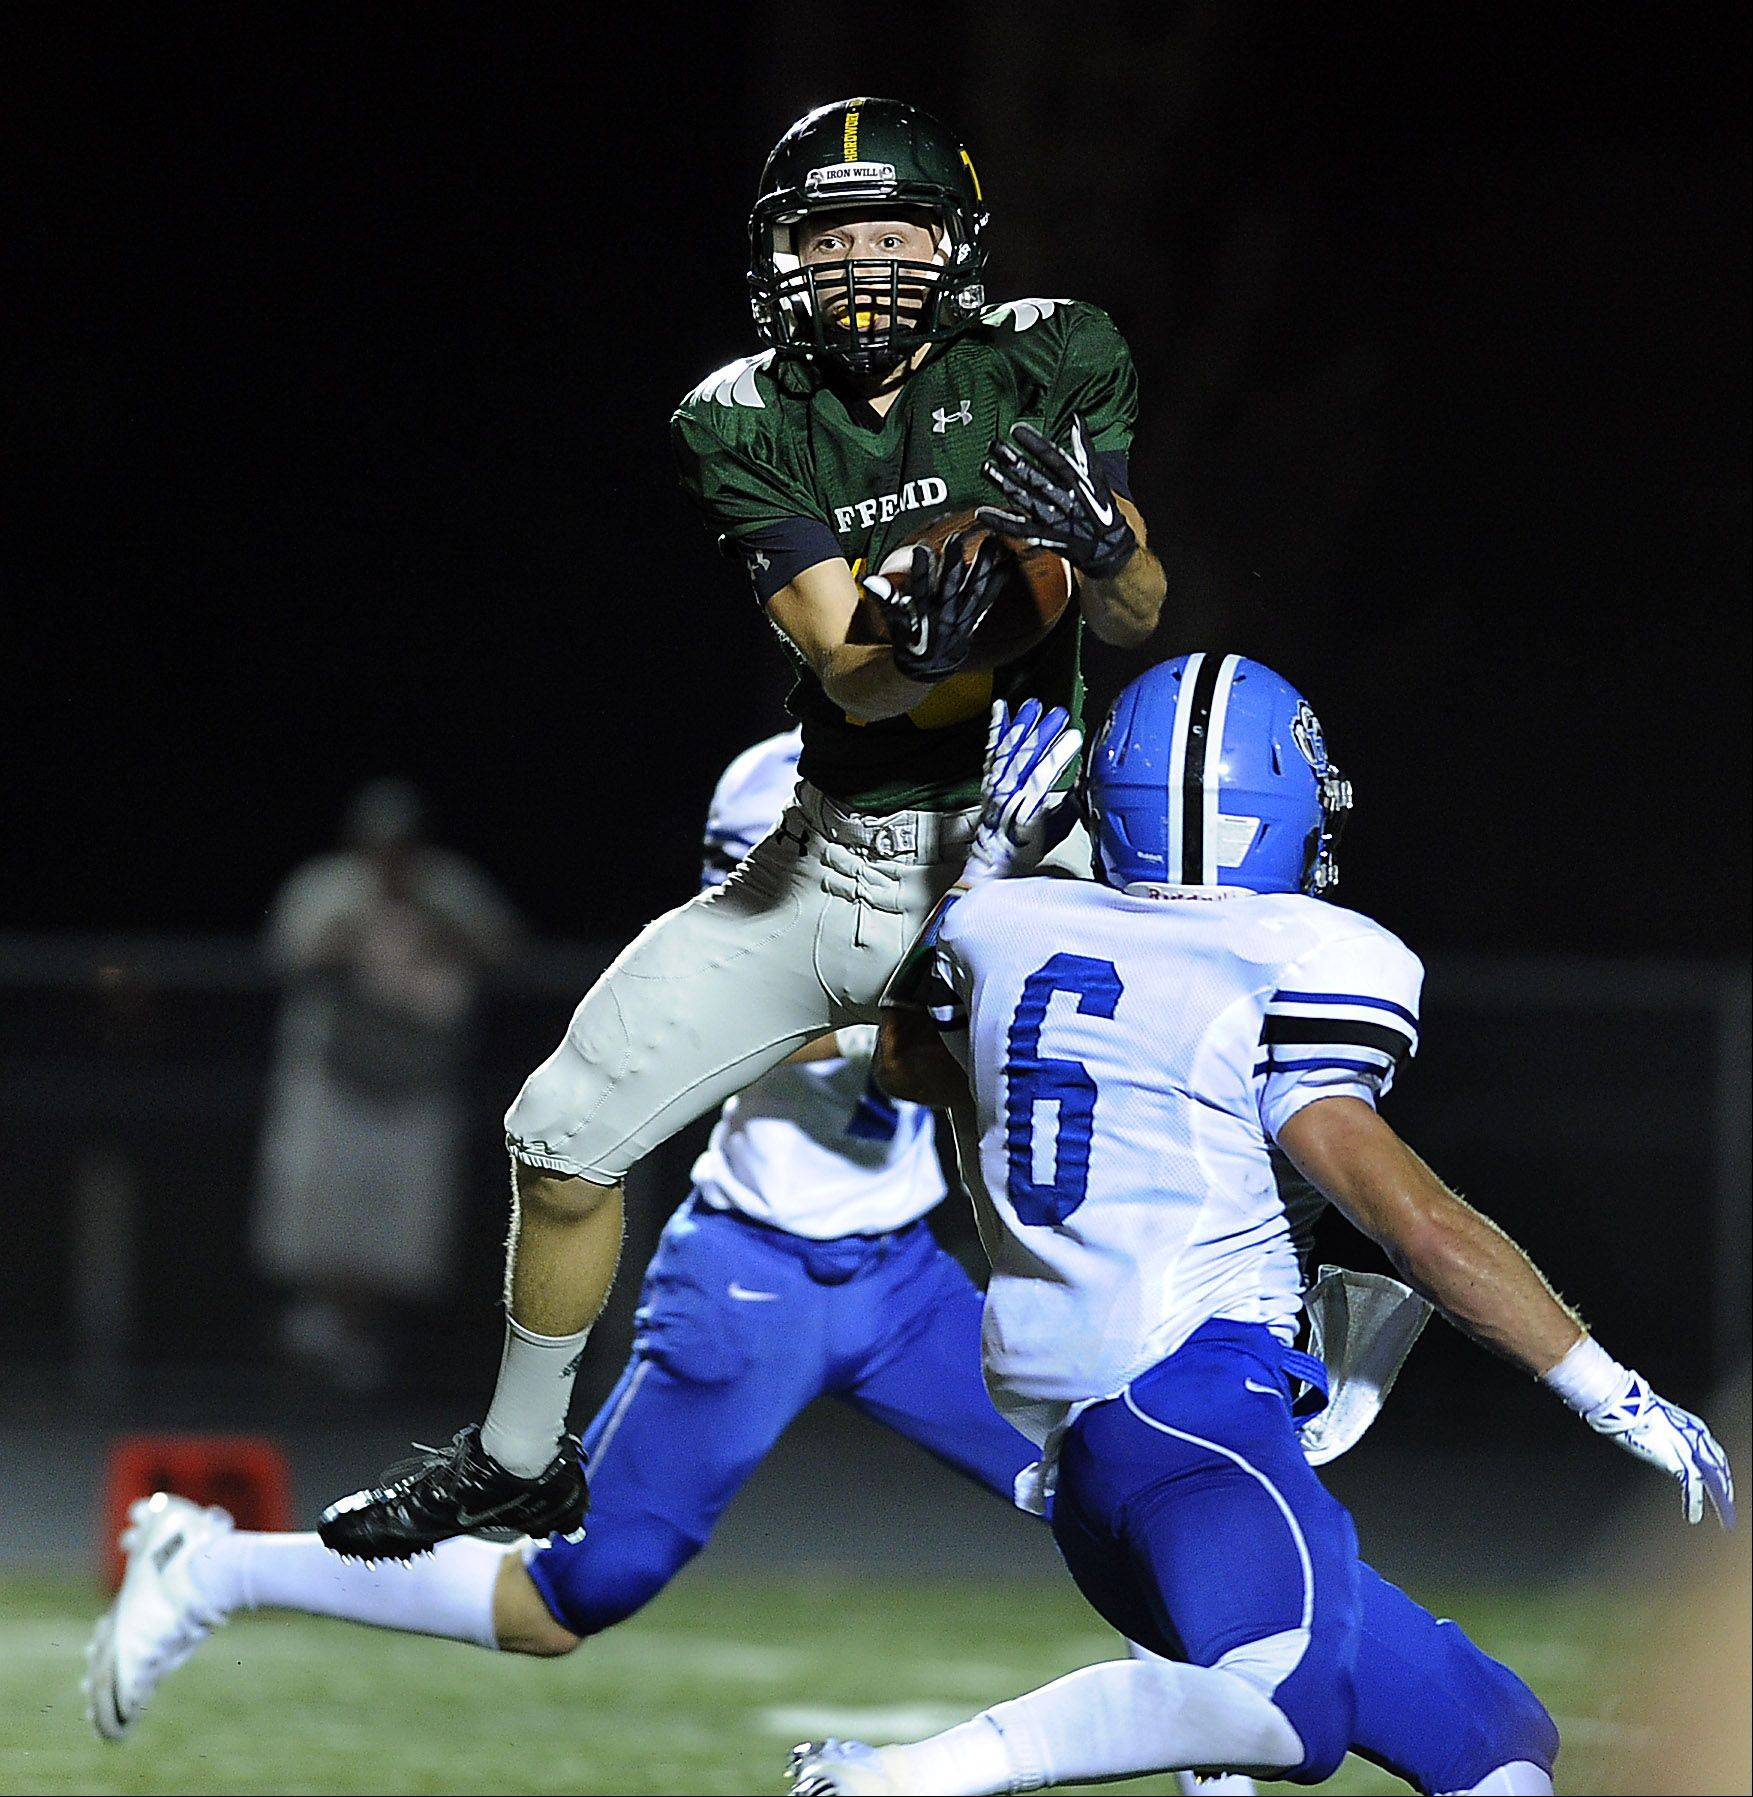 Fremd's Anthony Halvorsen hauls in a pass in the first quarter despite Lake Zurich's Sean Lynch attempts to defend him in a season opener at Fremd on Friday.